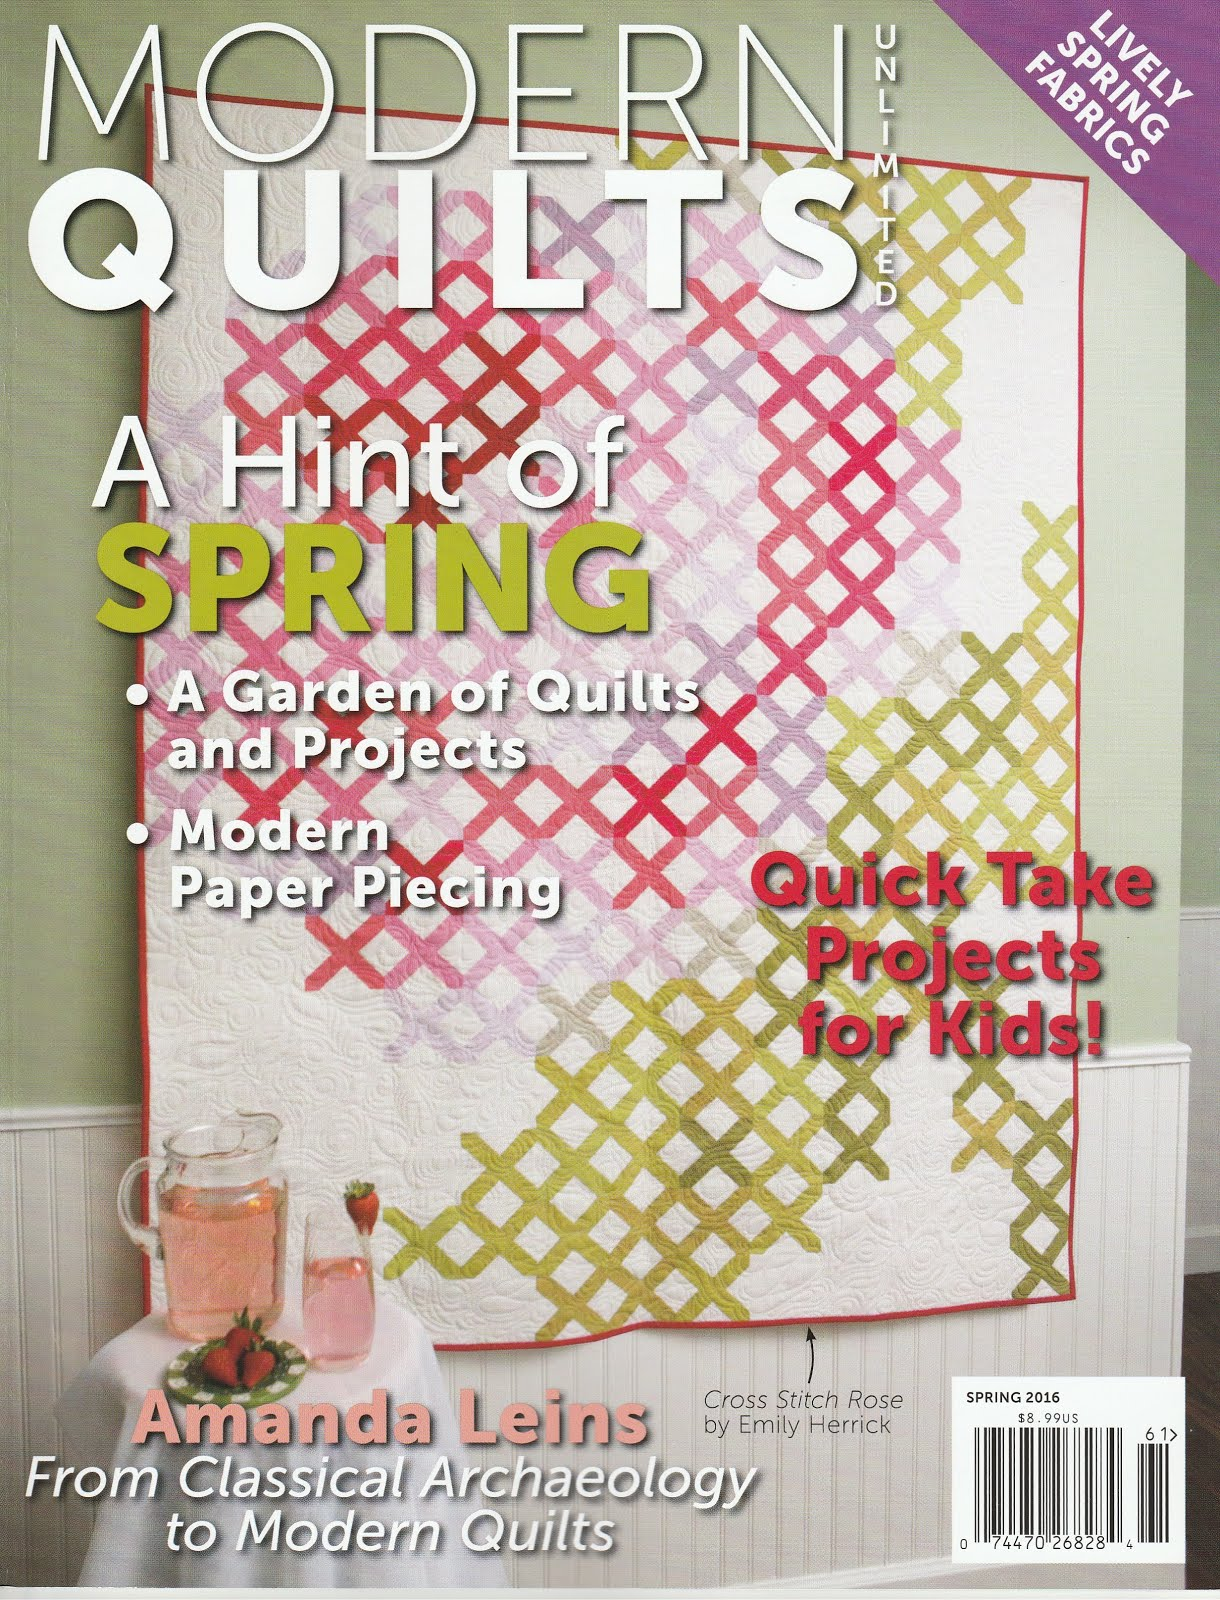 I'm in Modern Quilts Unlimited!